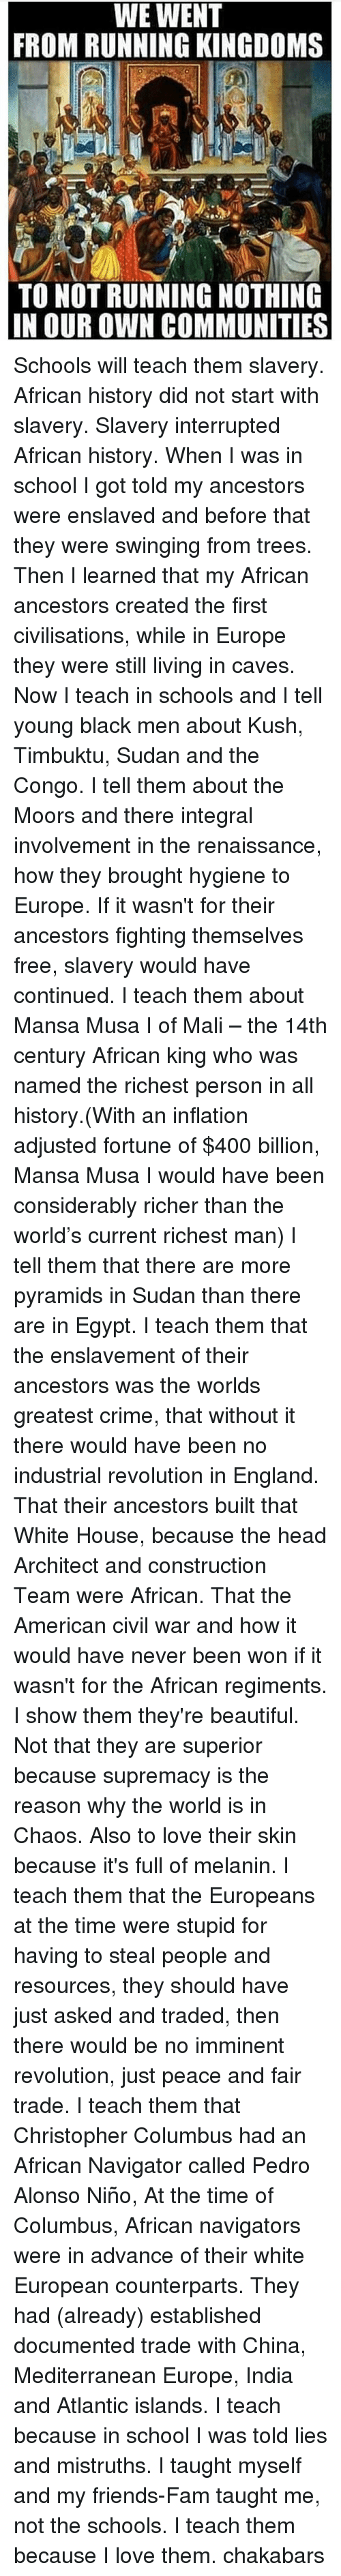 richest man: WE WENT  FROM RUNNING KINGDOMS  TO NOT RUNNING NOTHING  IN OUR OWN COMMUNITIES Schools will teach them slavery. African history did not start with slavery. Slavery interrupted African history. When I was in school I got told my ancestors were enslaved and before that they were swinging from trees. Then I learned that my African ancestors created the first civilisations, while in Europe they were still living in caves. Now I teach in schools and I tell young black men about Kush, Timbuktu, Sudan and the Congo. I tell them about the Moors and there integral involvement in the renaissance, how they brought hygiene to Europe. If it wasn't for their ancestors fighting themselves free, slavery would have continued. I teach them about Mansa Musa I of Mali – the 14th century African king who was named the richest person in all history.(With an inflation adjusted fortune of $400 billion, Mansa Musa I would have been considerably richer than the world's current richest man) I tell them that there are more pyramids in Sudan than there are in Egypt. I teach them that the enslavement of their ancestors was the worlds greatest crime, that without it there would have been no industrial revolution in England. That their ancestors built that White House, because the head Architect and construction Team were African. That the American civil war and how it would have never been won if it wasn't for the African regiments. I show them they're beautiful. Not that they are superior because supremacy is the reason why the world is in Chaos. Also to love their skin because it's full of melanin. I teach them that the Europeans at the time were stupid for having to steal people and resources, they should have just asked and traded, then there would be no imminent revolution, just peace and fair trade. I teach them that Christopher Columbus had an African Navigator called Pedro Alonso Niño, At the time of Columbus, African navigators were in advance of their white European counterparts. They had (already) established documented trade with China, Mediterranean Europe, India and Atlantic islands. I teach because in school I was told lies and mistruths. I taught myself and my friends-Fam taught me, not the schools. I teach them because I love them. chakabars